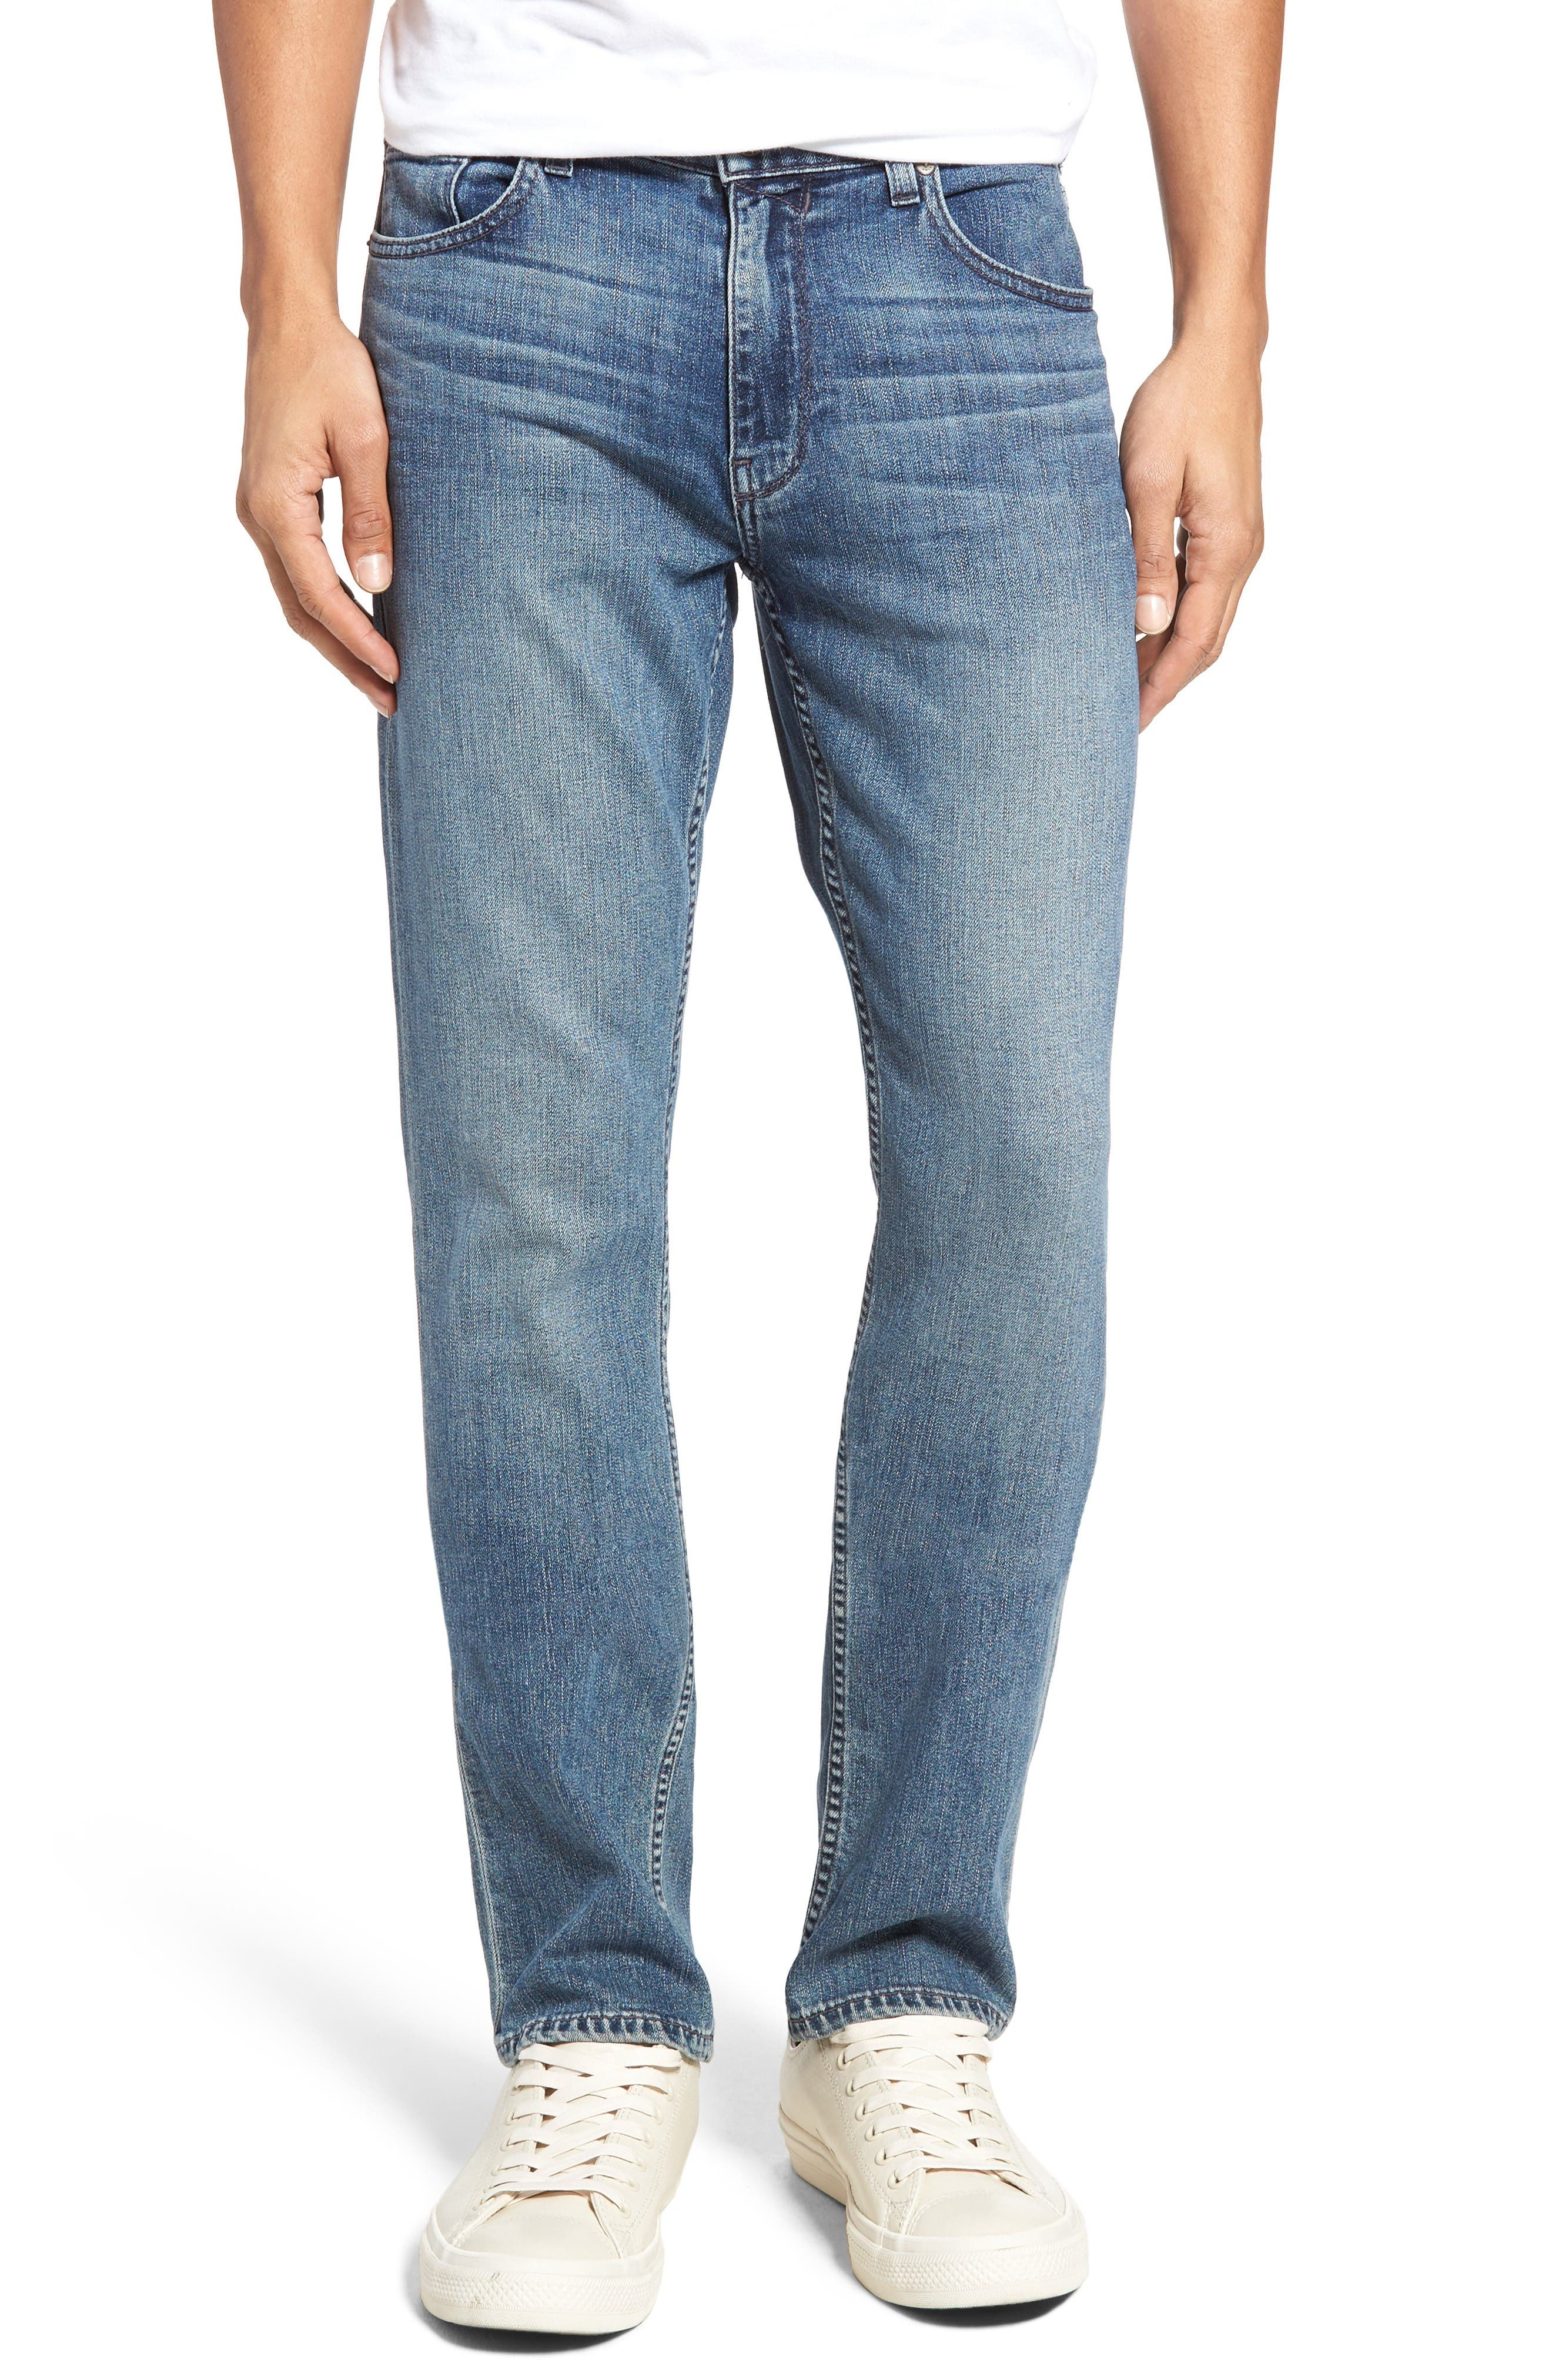 Normandie Straight Leg Jeans,                             Main thumbnail 1, color,                             Gibbs